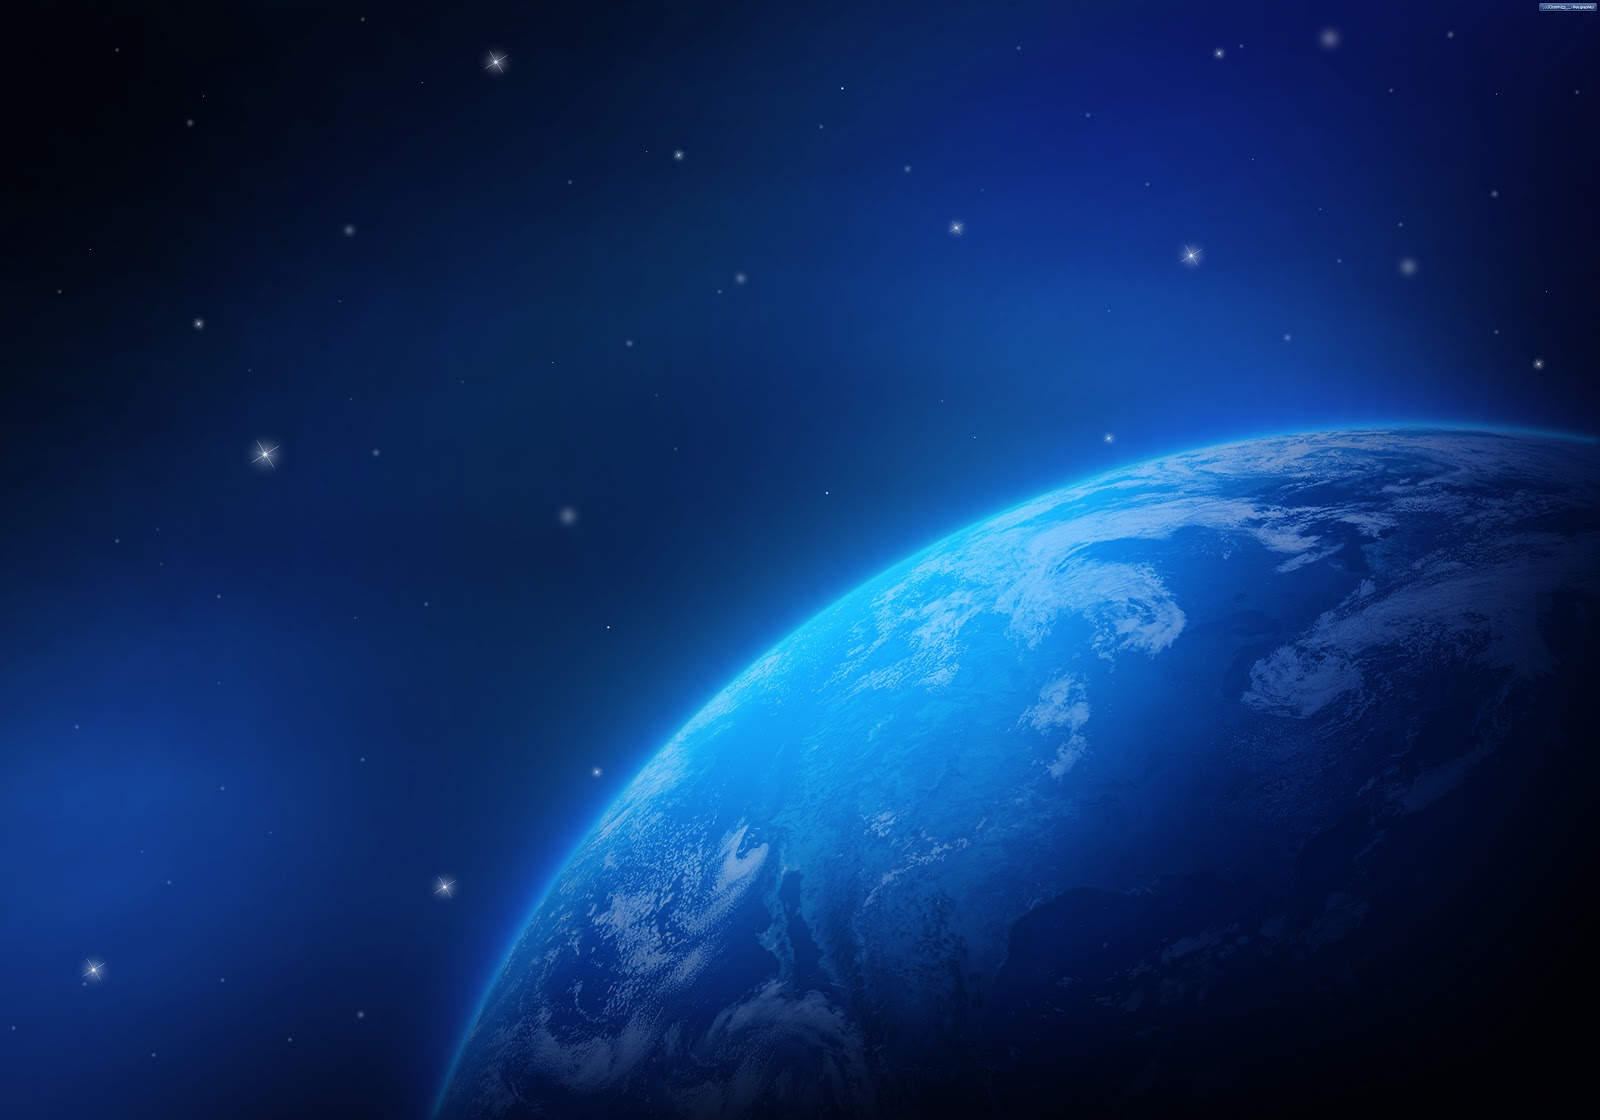 Good Wallpaper High Resolution Earth - YZLrkm  Pic_66866.jpg